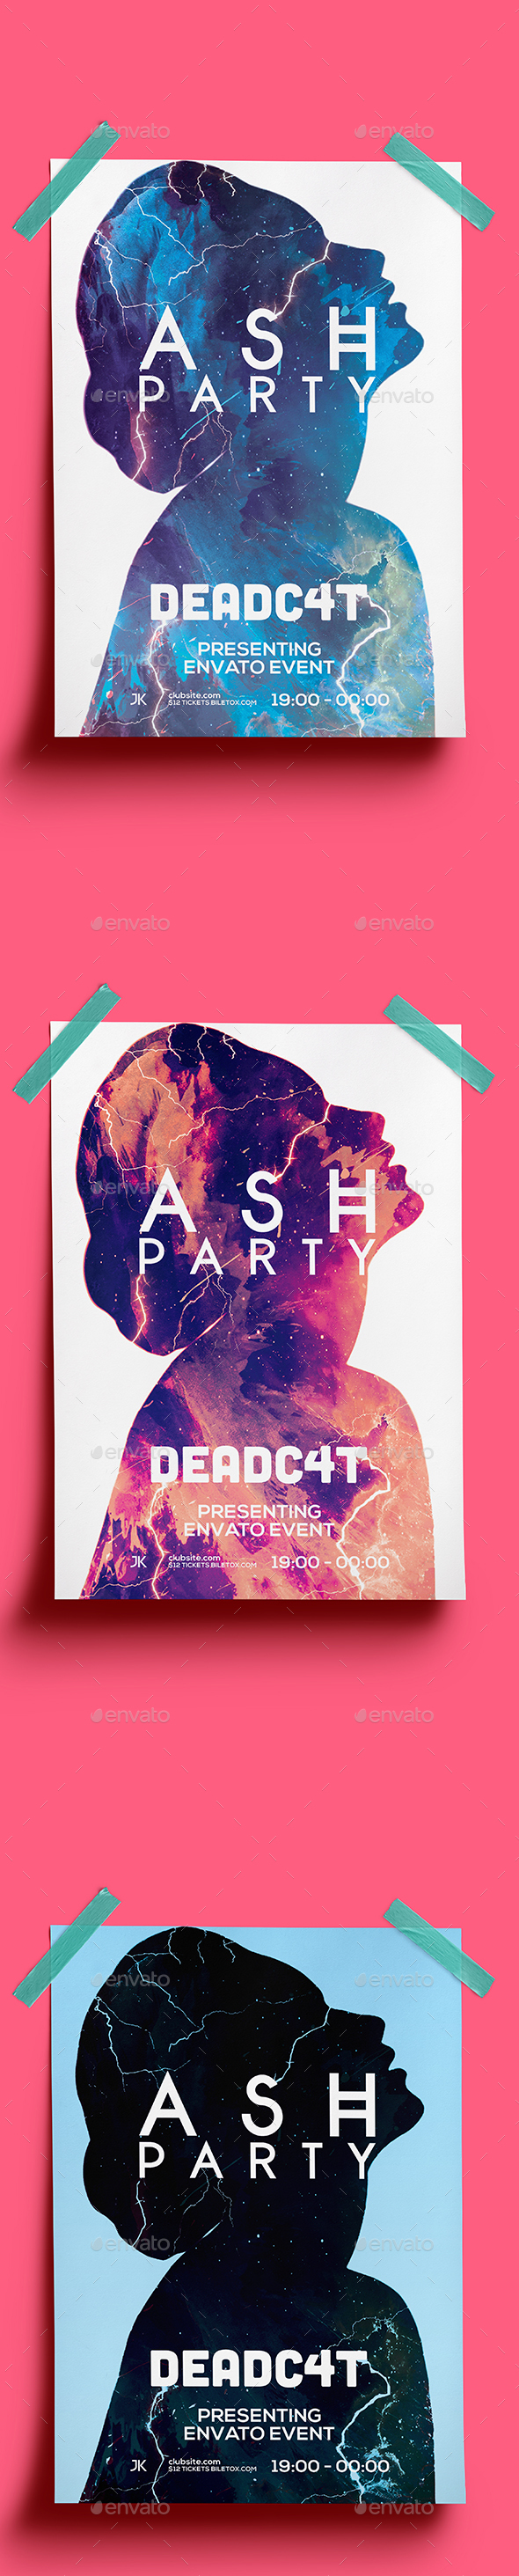 Ash Party Flyer Template - Clubs & Parties Events